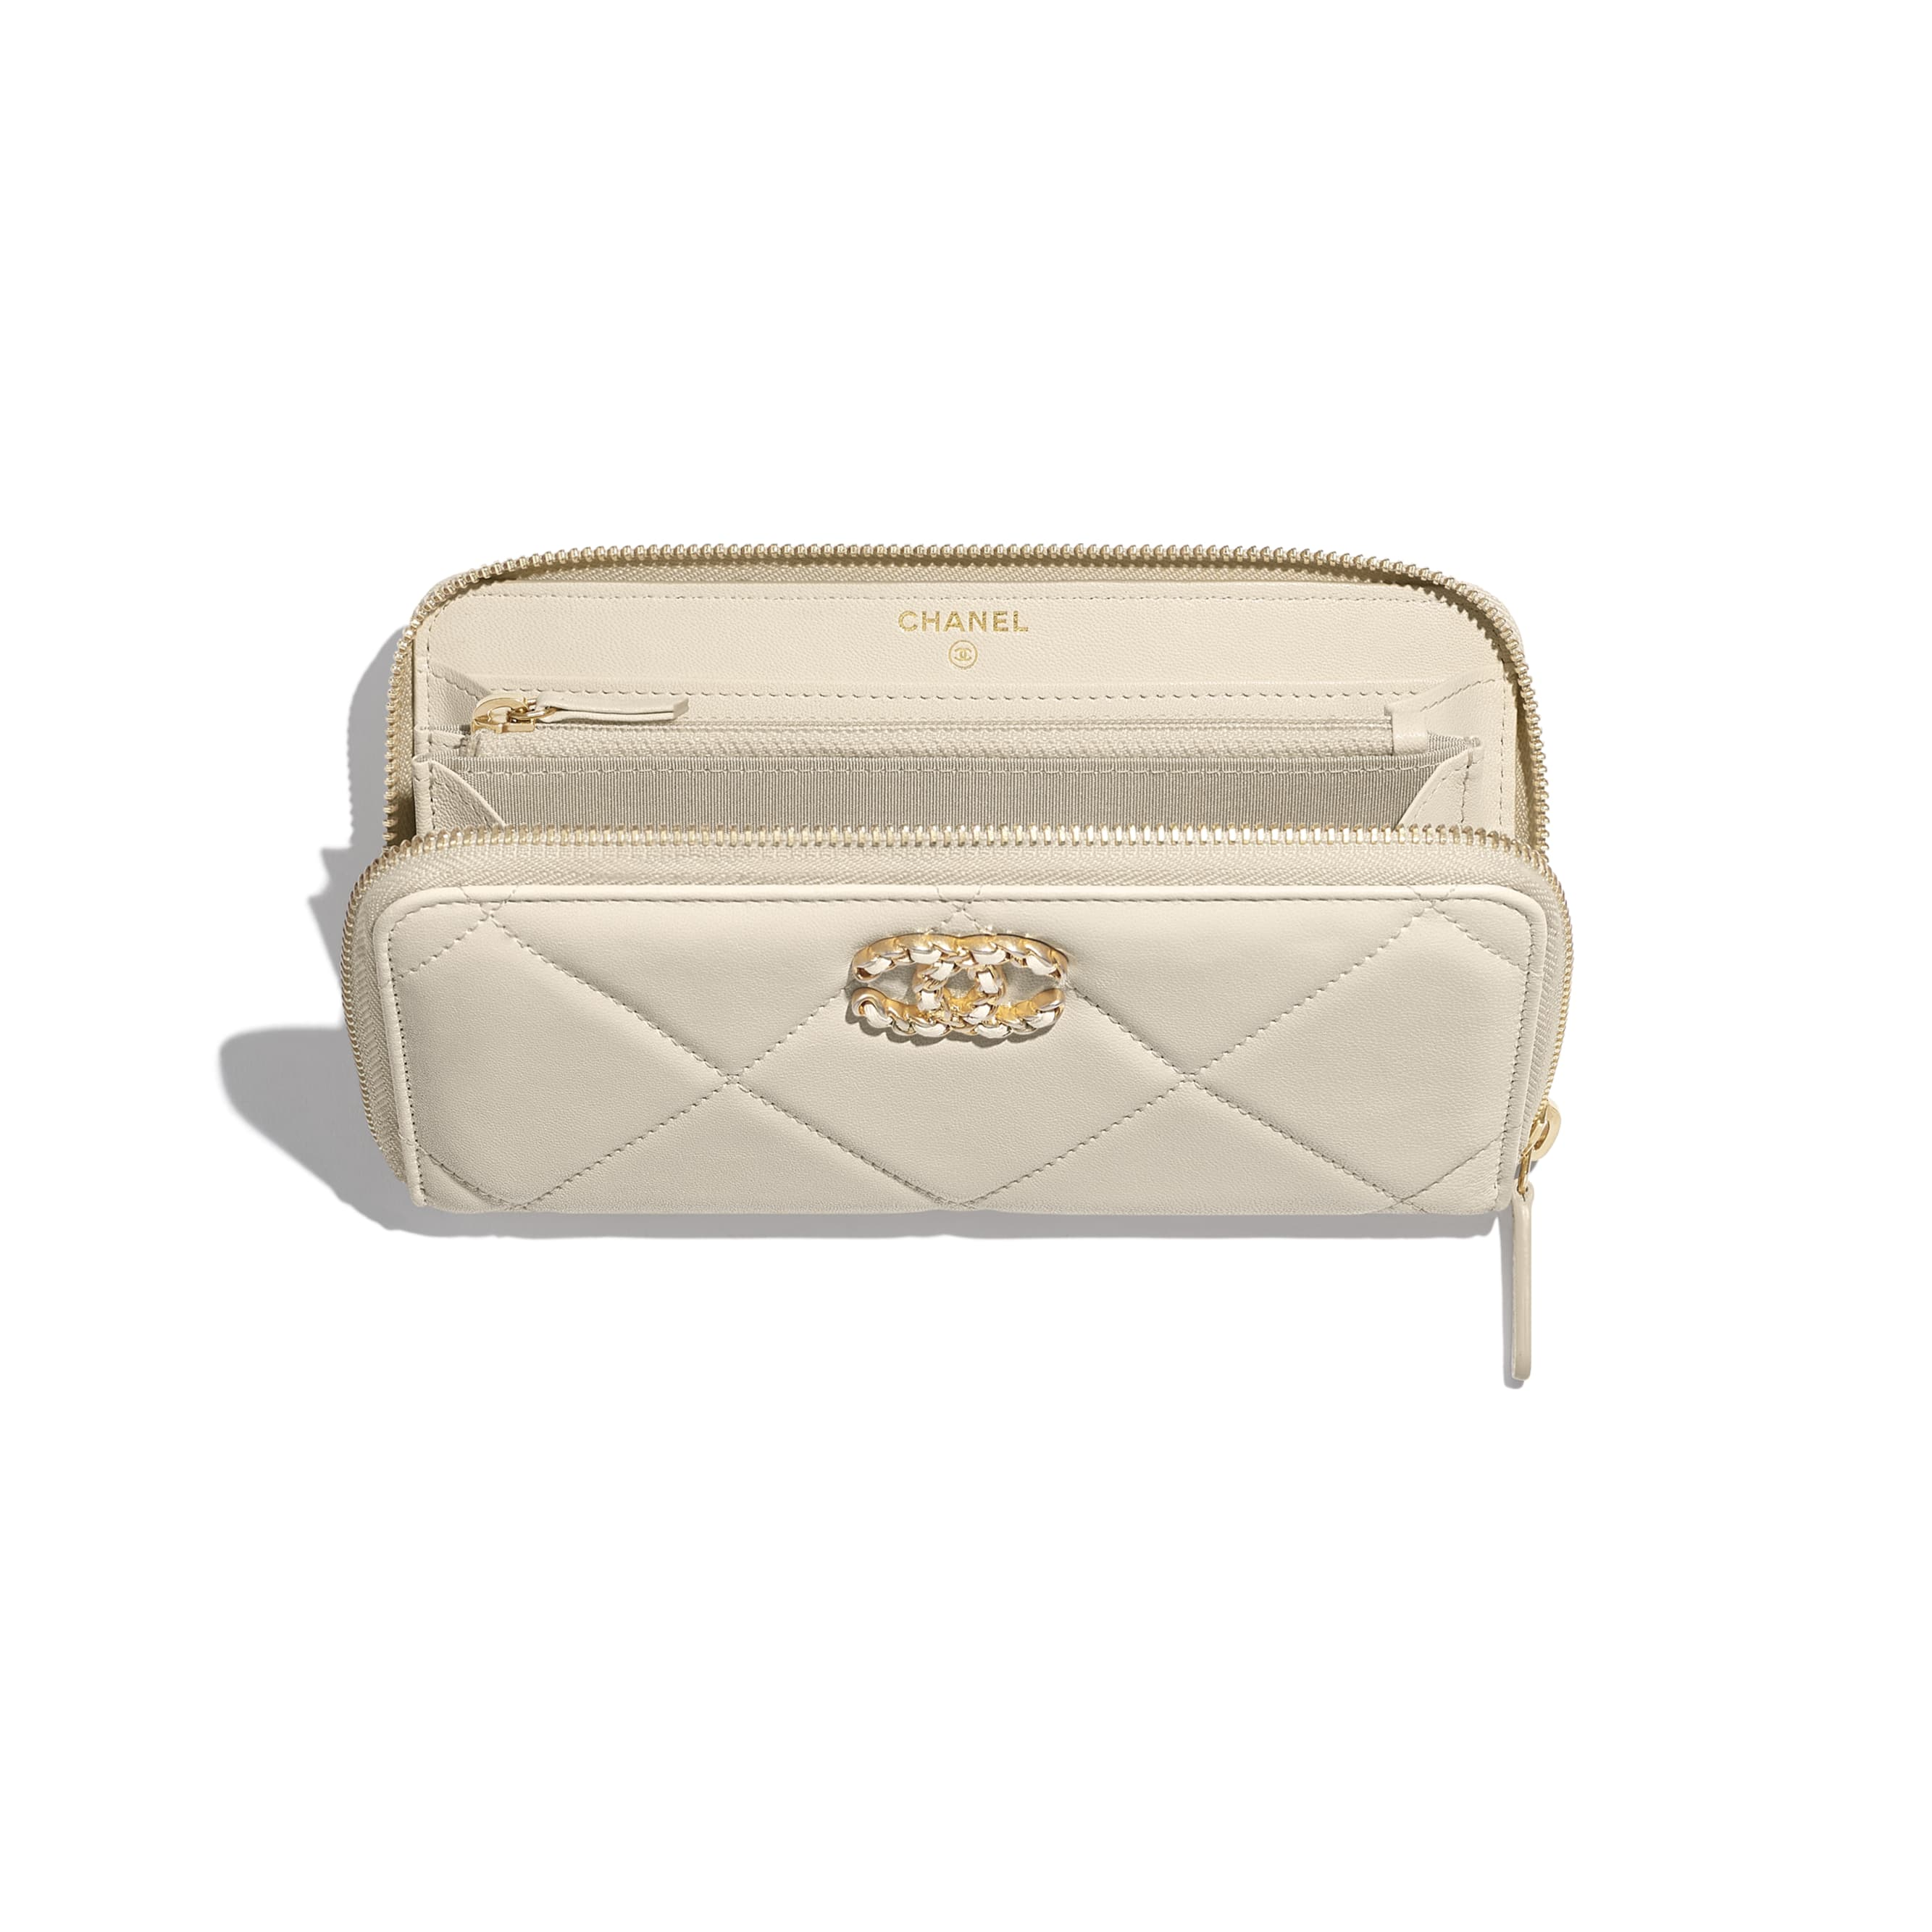 CHANEL 19 Long Zipped Wallet - Light Beige - Lambskin, Gold-Tone, Silver-Tone & Ruthenium-Finish Metal - Other view - see standard sized version